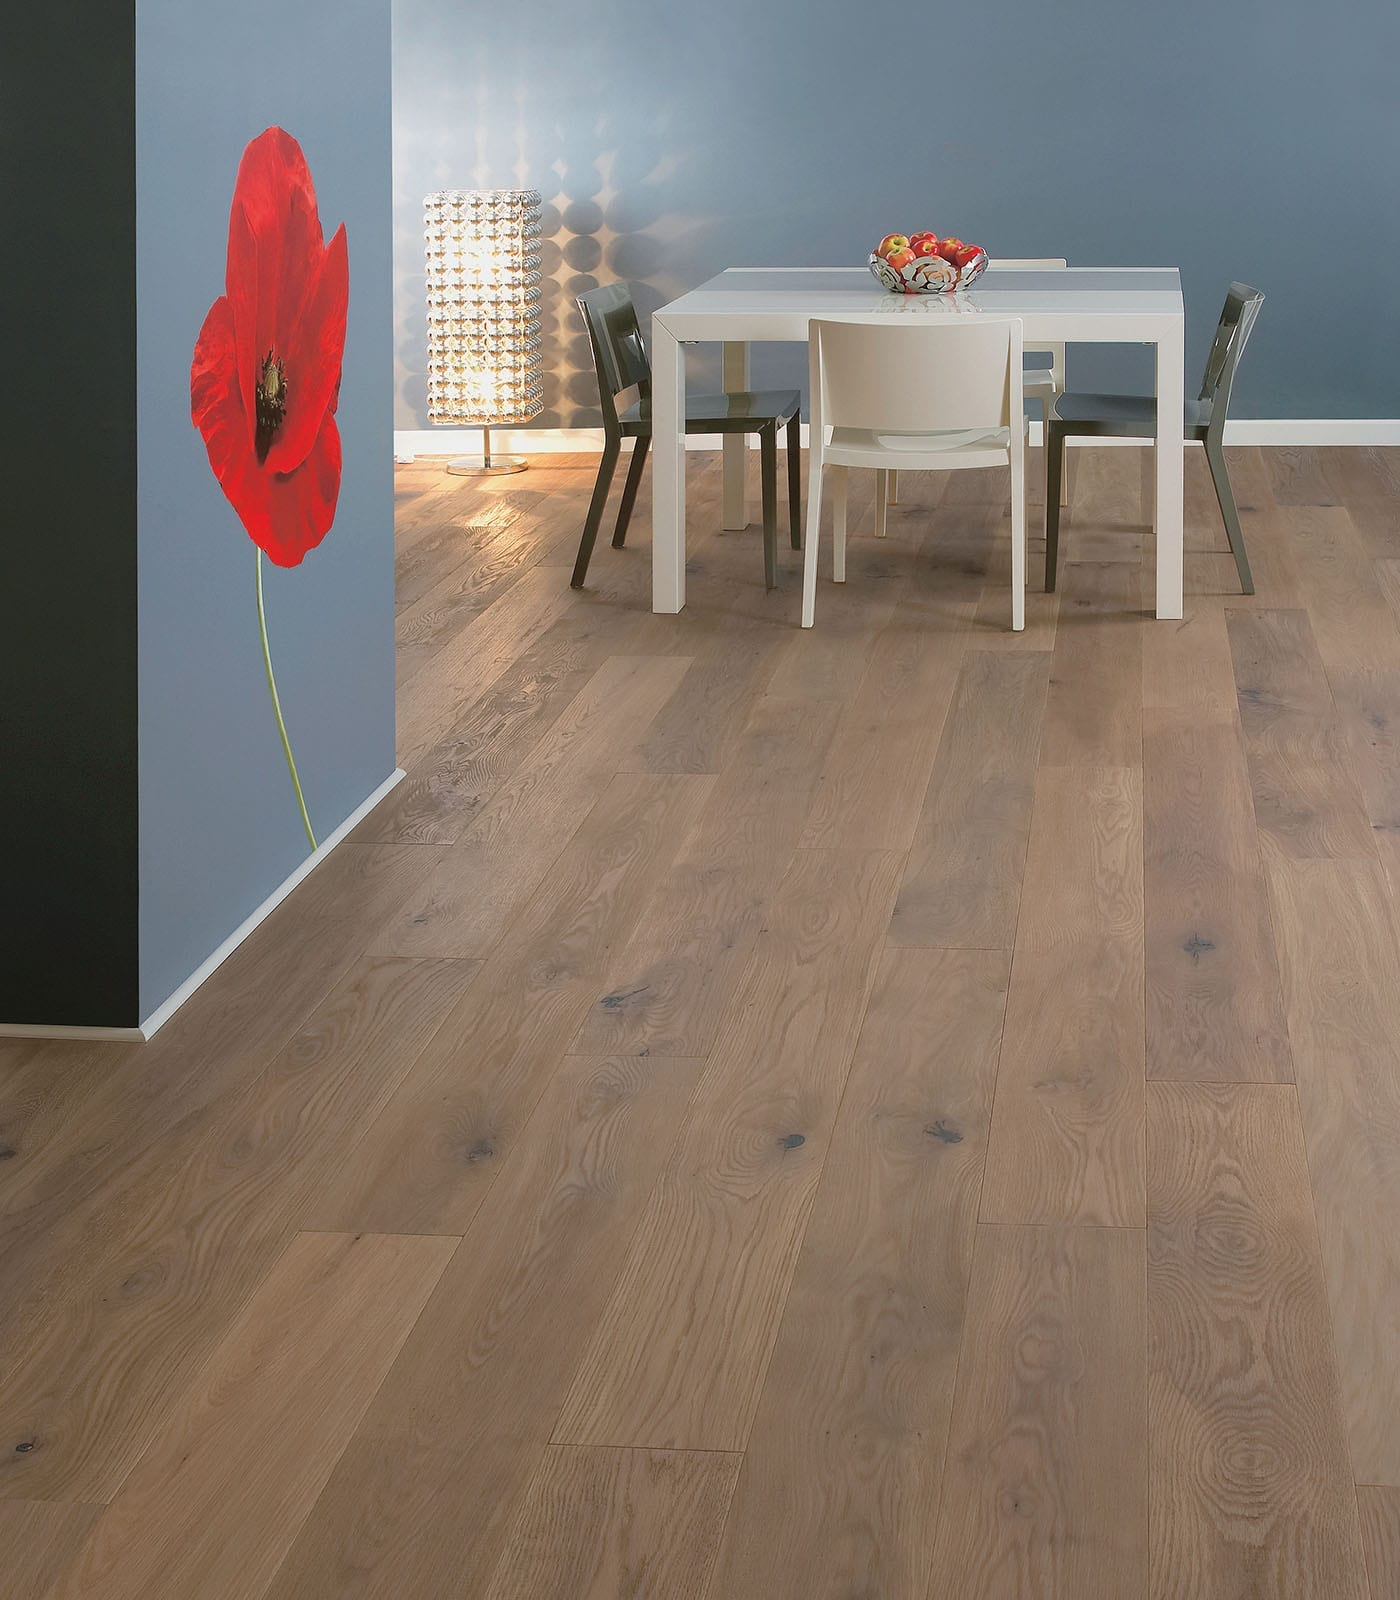 Ozark-Antique Collection-European Oak Floors-room